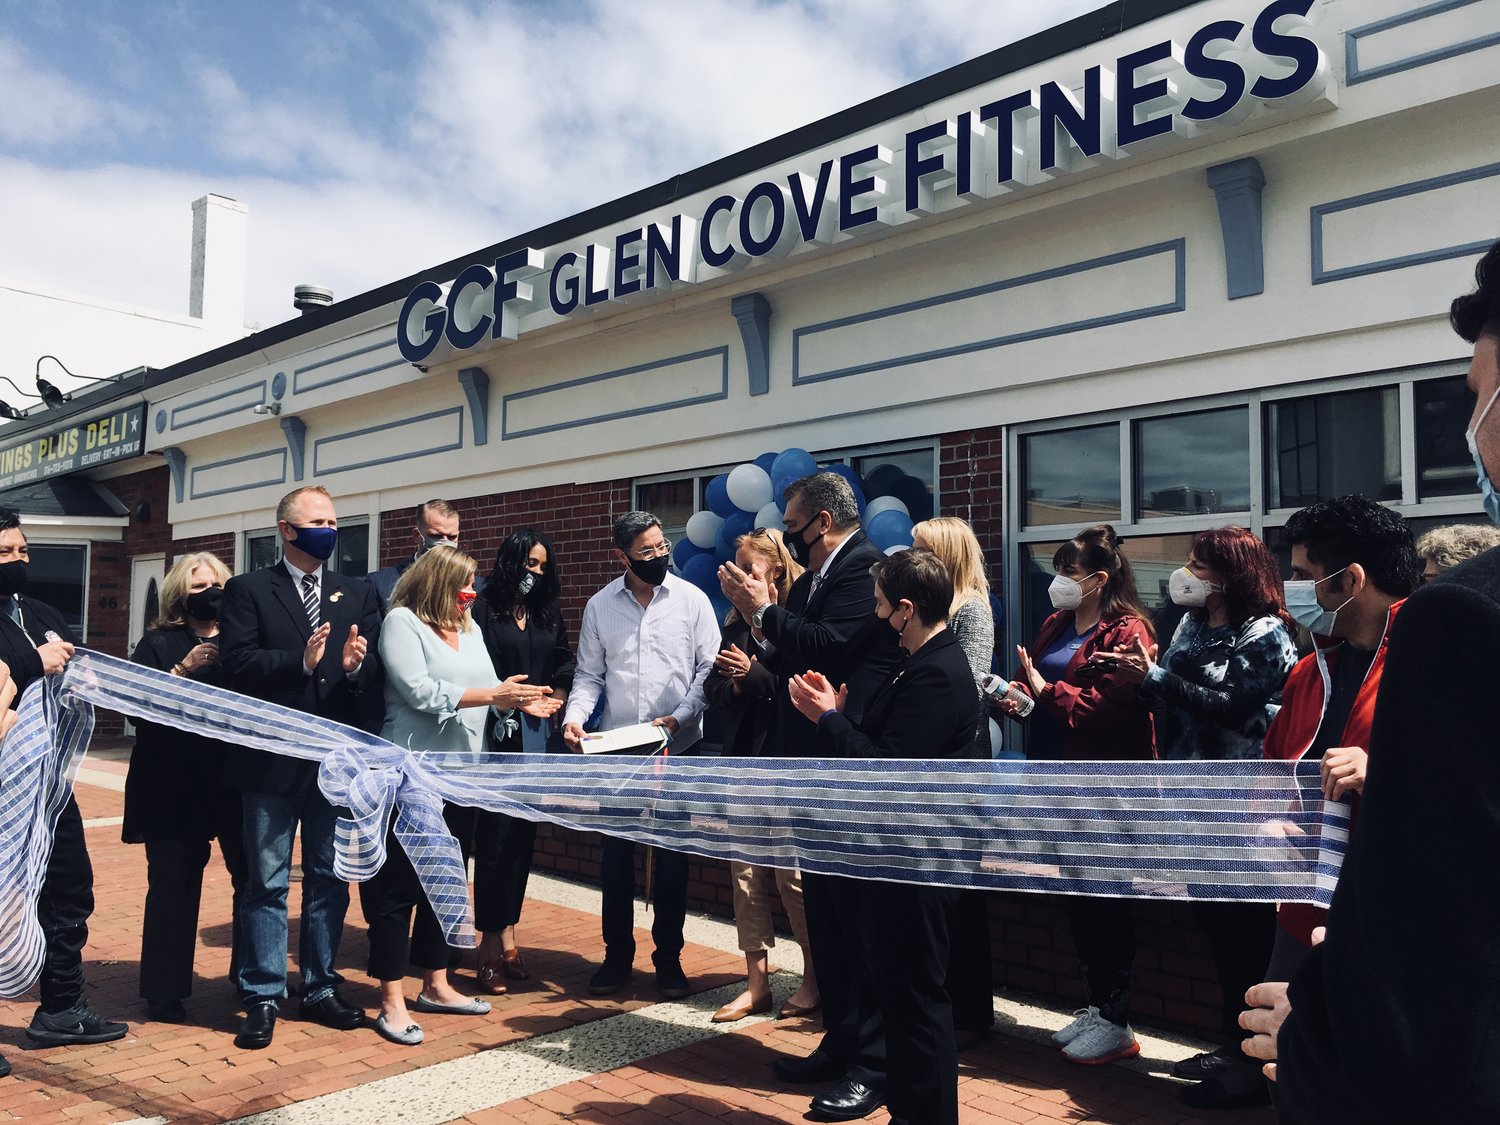 Glen Cove Fitness owner Alvin Batista, center, was congratulated by Mayor Tim Tenke, members of the Chamber of Commerce and the Downtown Business Improvement District for 20 years in business.